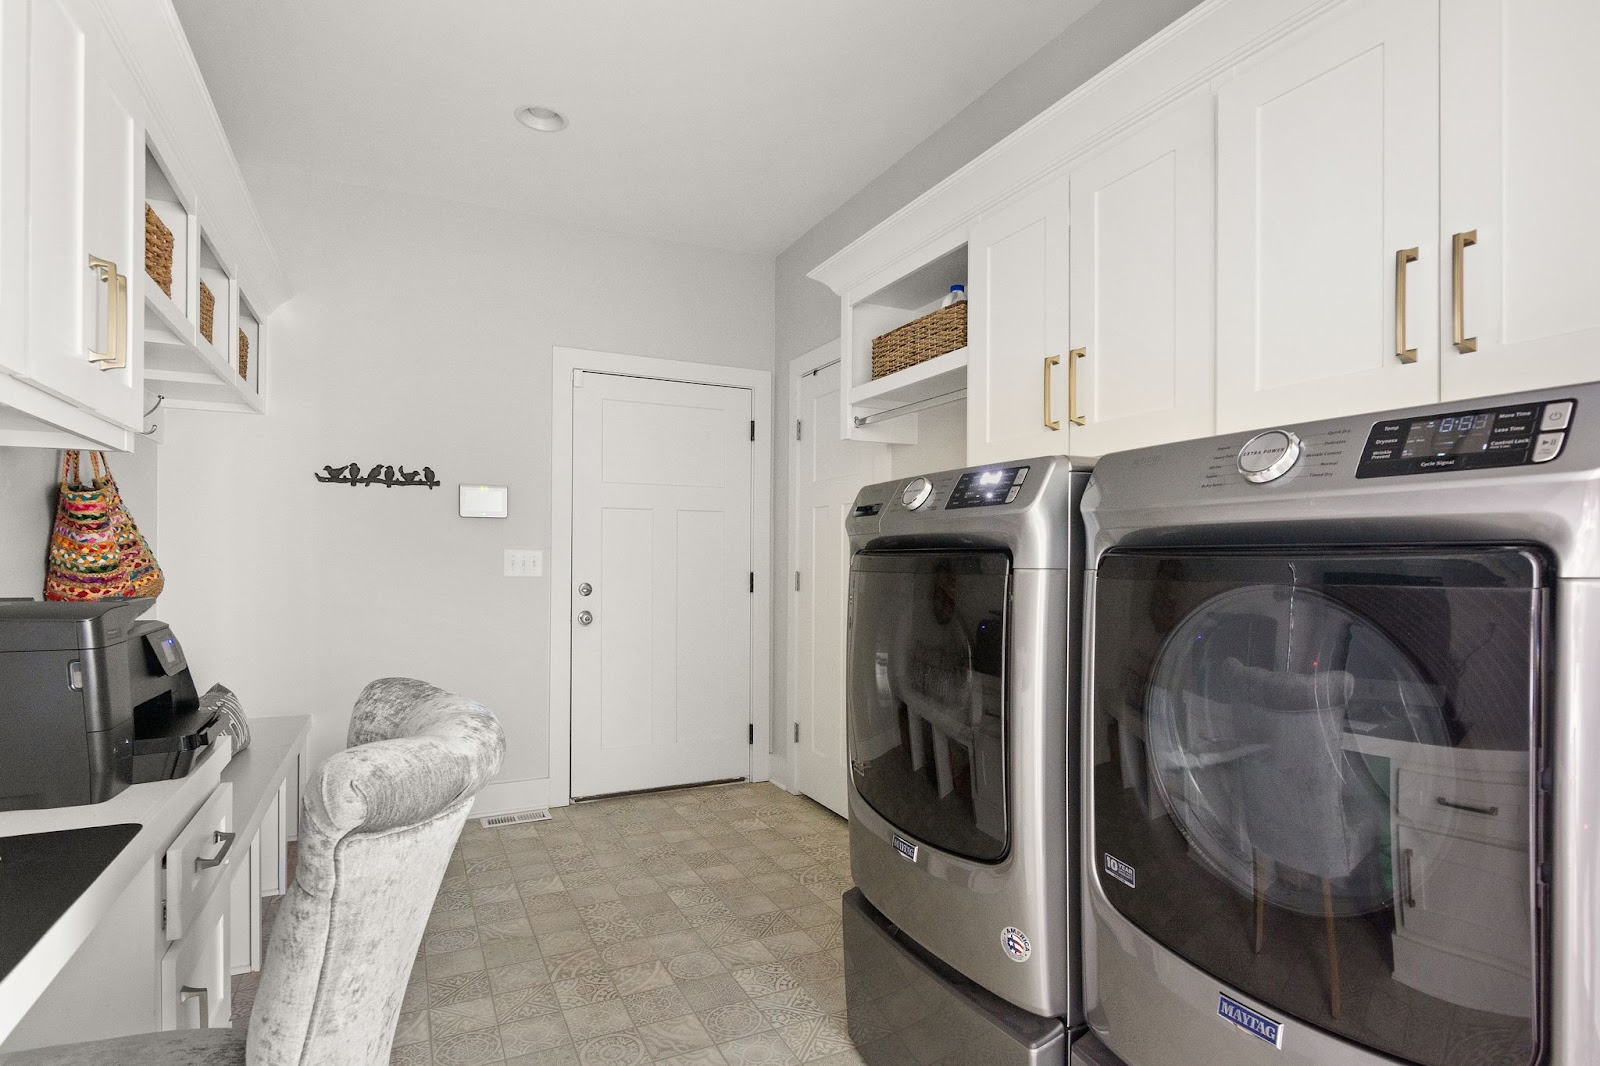 Superior construction and design mt juliet lebanon tn best appliances for laundry room